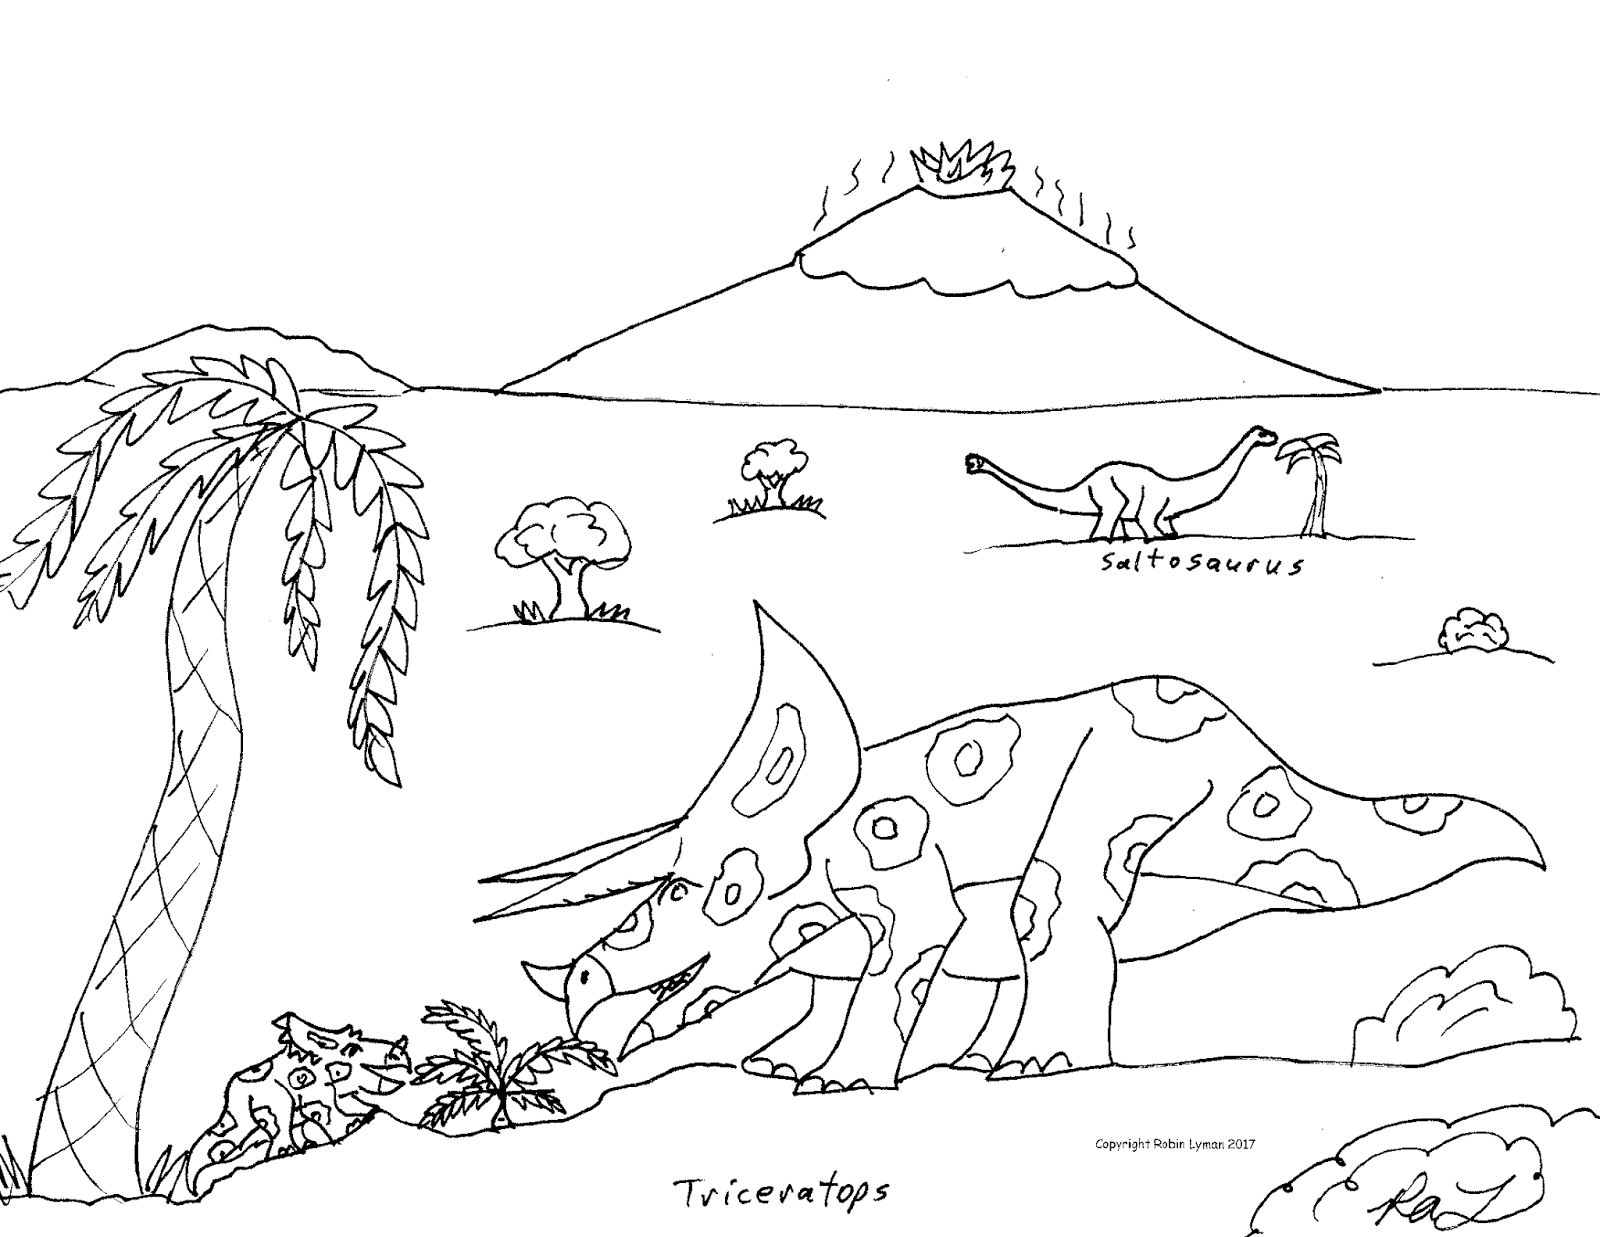 Robin's Great Coloring Pages: Ceratopsian or Horned ...